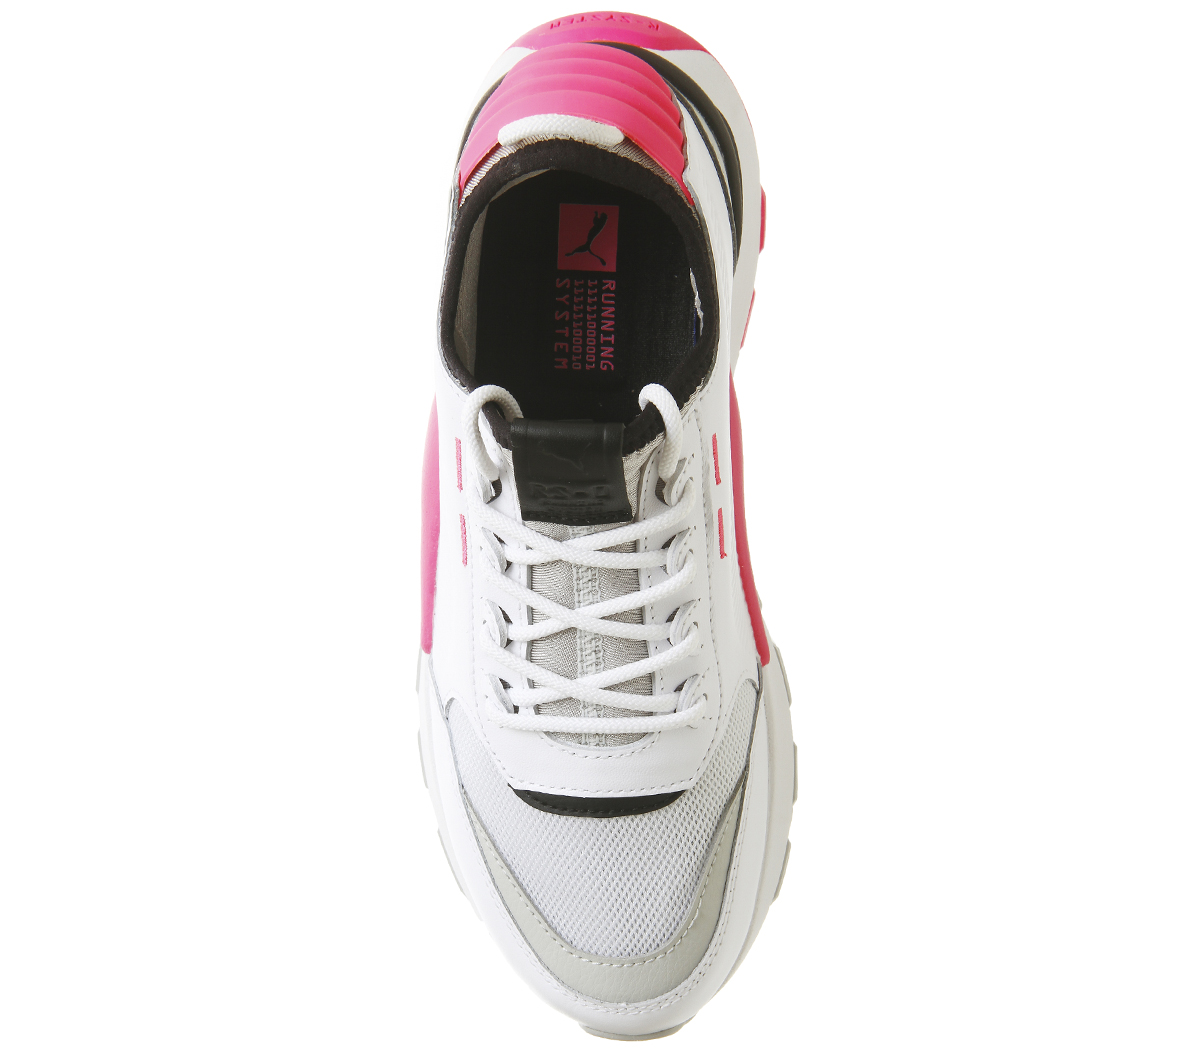 5241283d4ca Sentinel Womens Puma Rs-0 Sound Trainers Puma White Grey Knockout Pink  Trainers Shoes